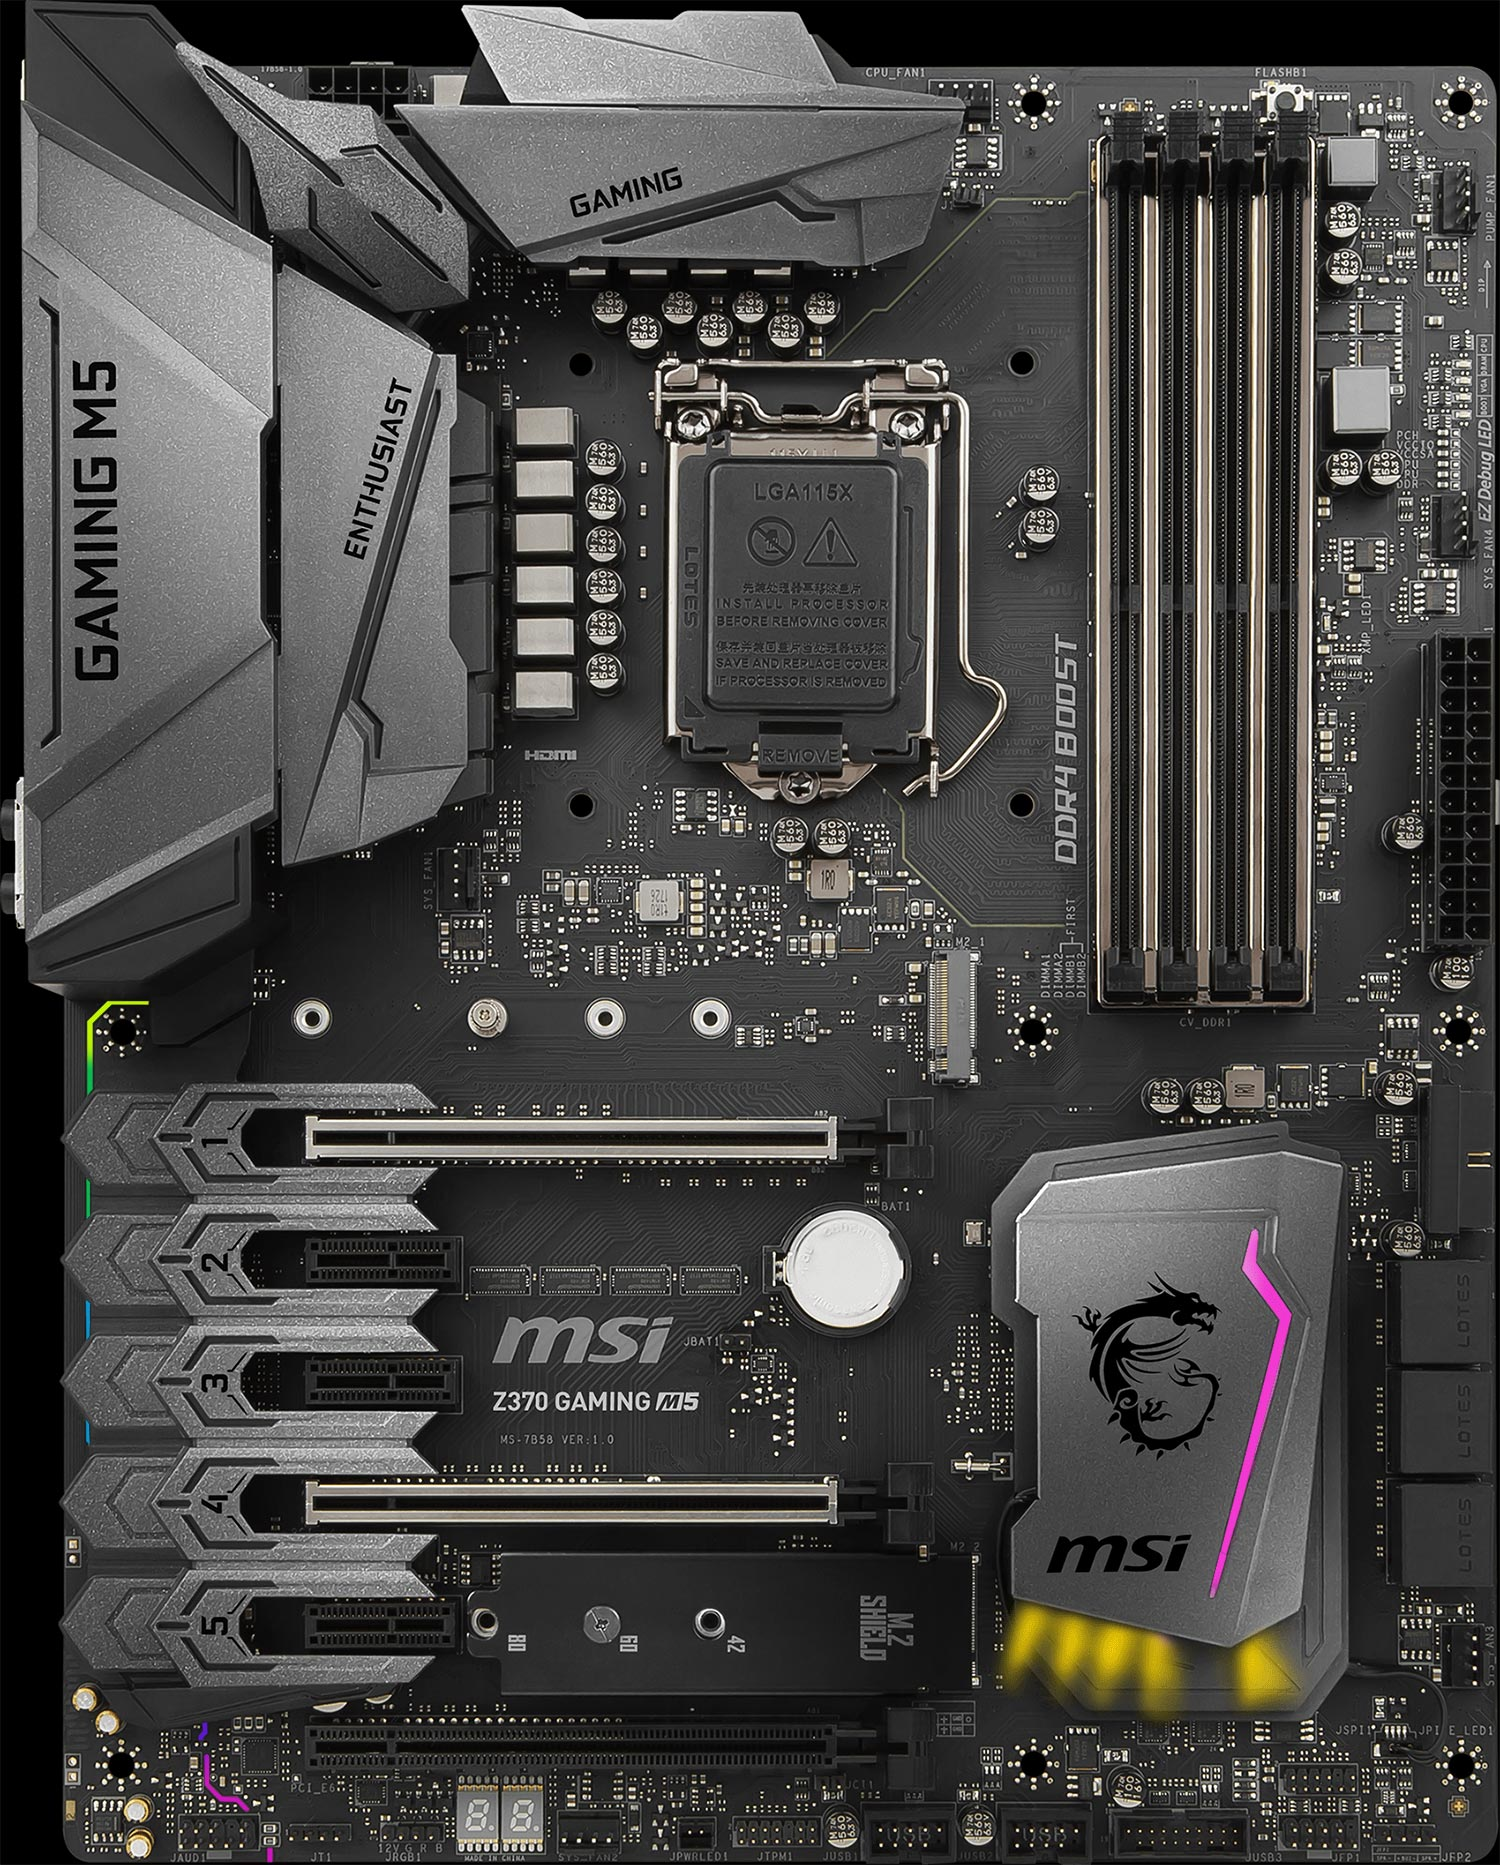 MSI Z370 Gaming M5 Enthusiast Intel Coffee Lake LGA 1151 DDR4 ATX Motherboard